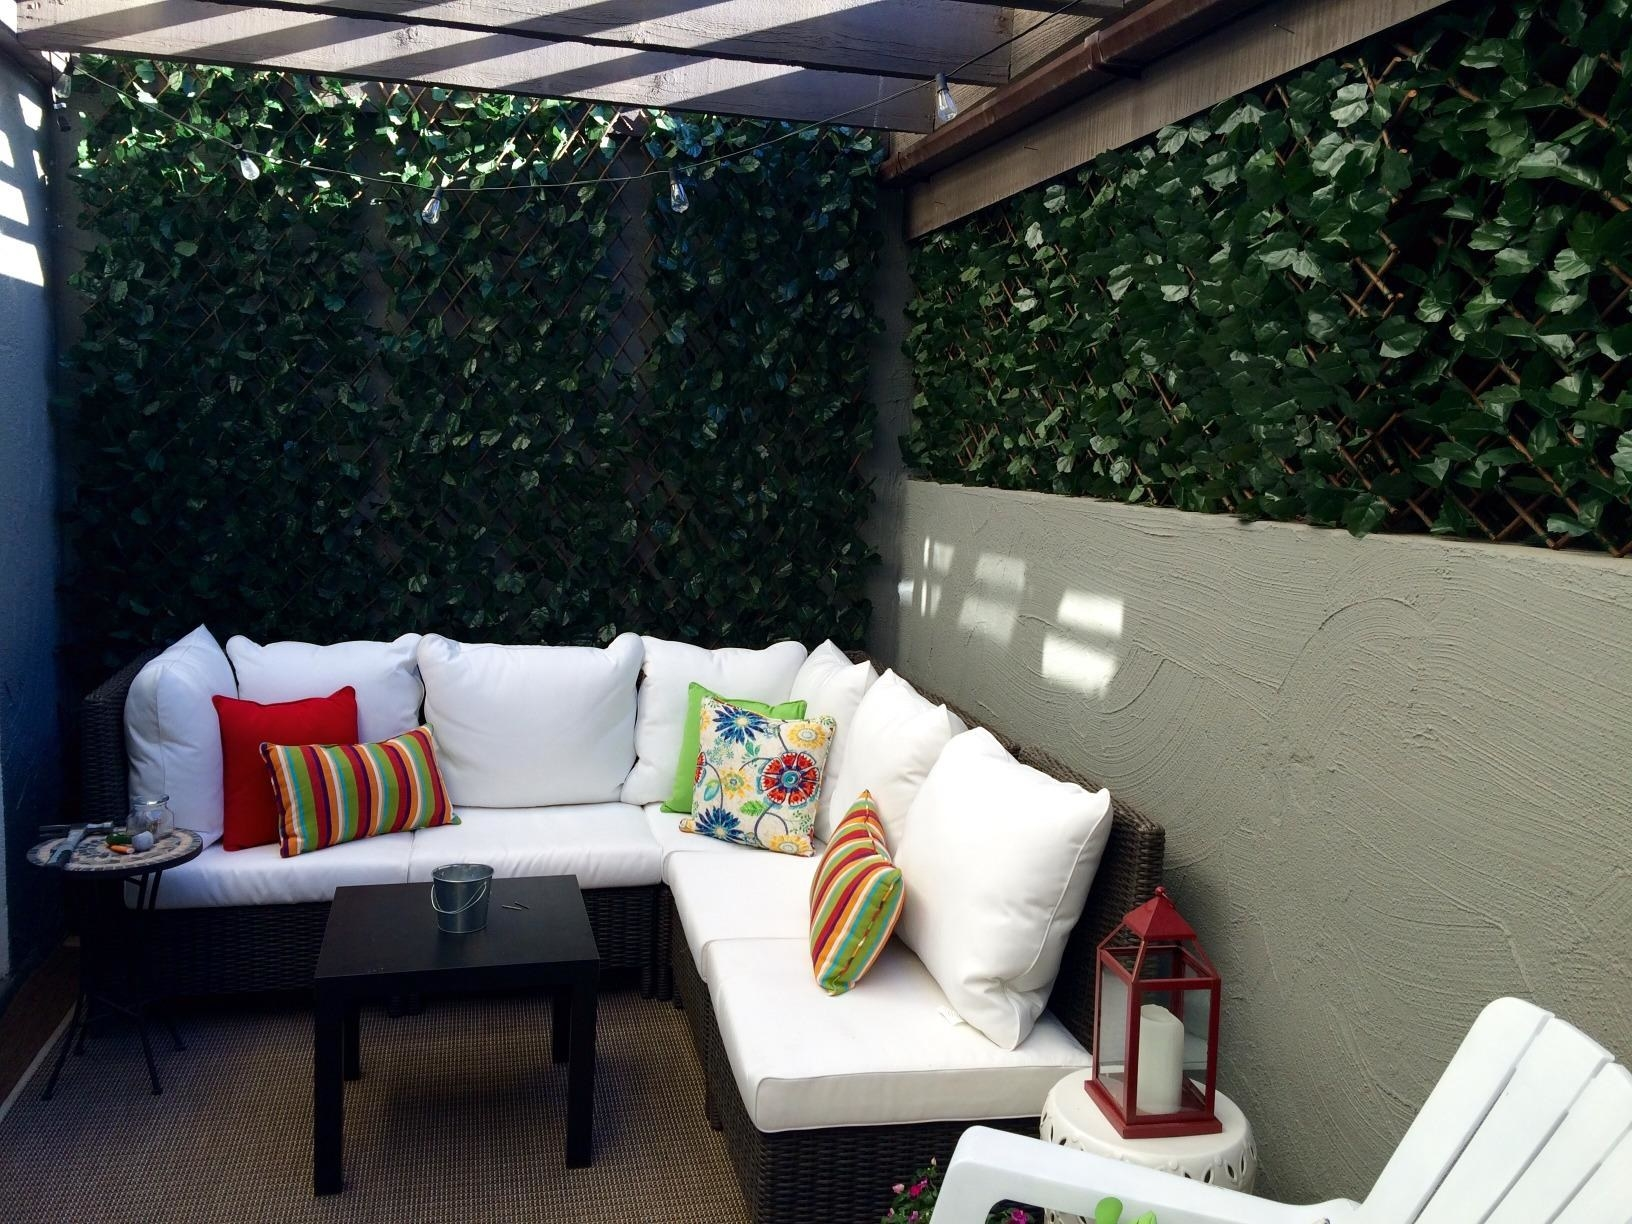 A small patio with the artificial greenery screen surrounding it on two sides.